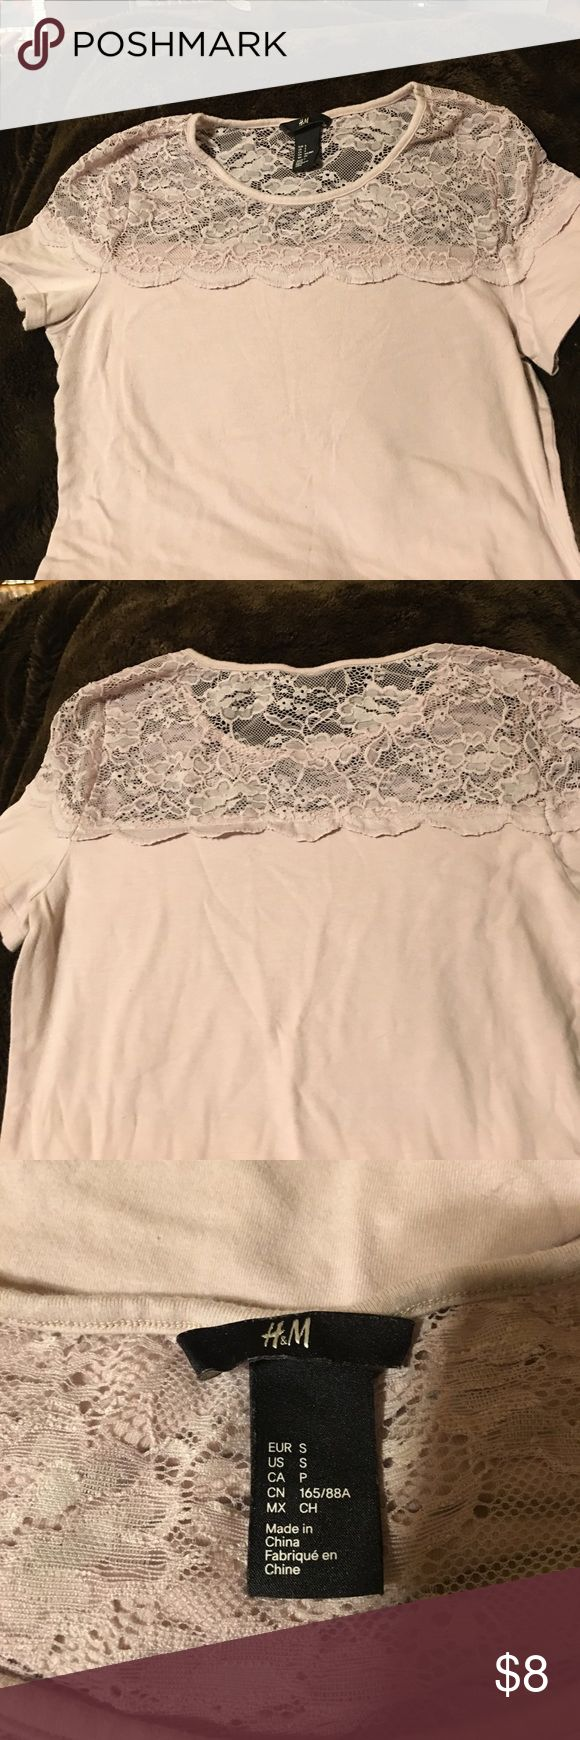 H&M Lace Short Sleeve Top Cute T with lace top from H&M in neutral light pinkish color.  Buy any five items in my closet that are priced $8 for $30 !!!! H&M Tops Tees - Short Sleeve